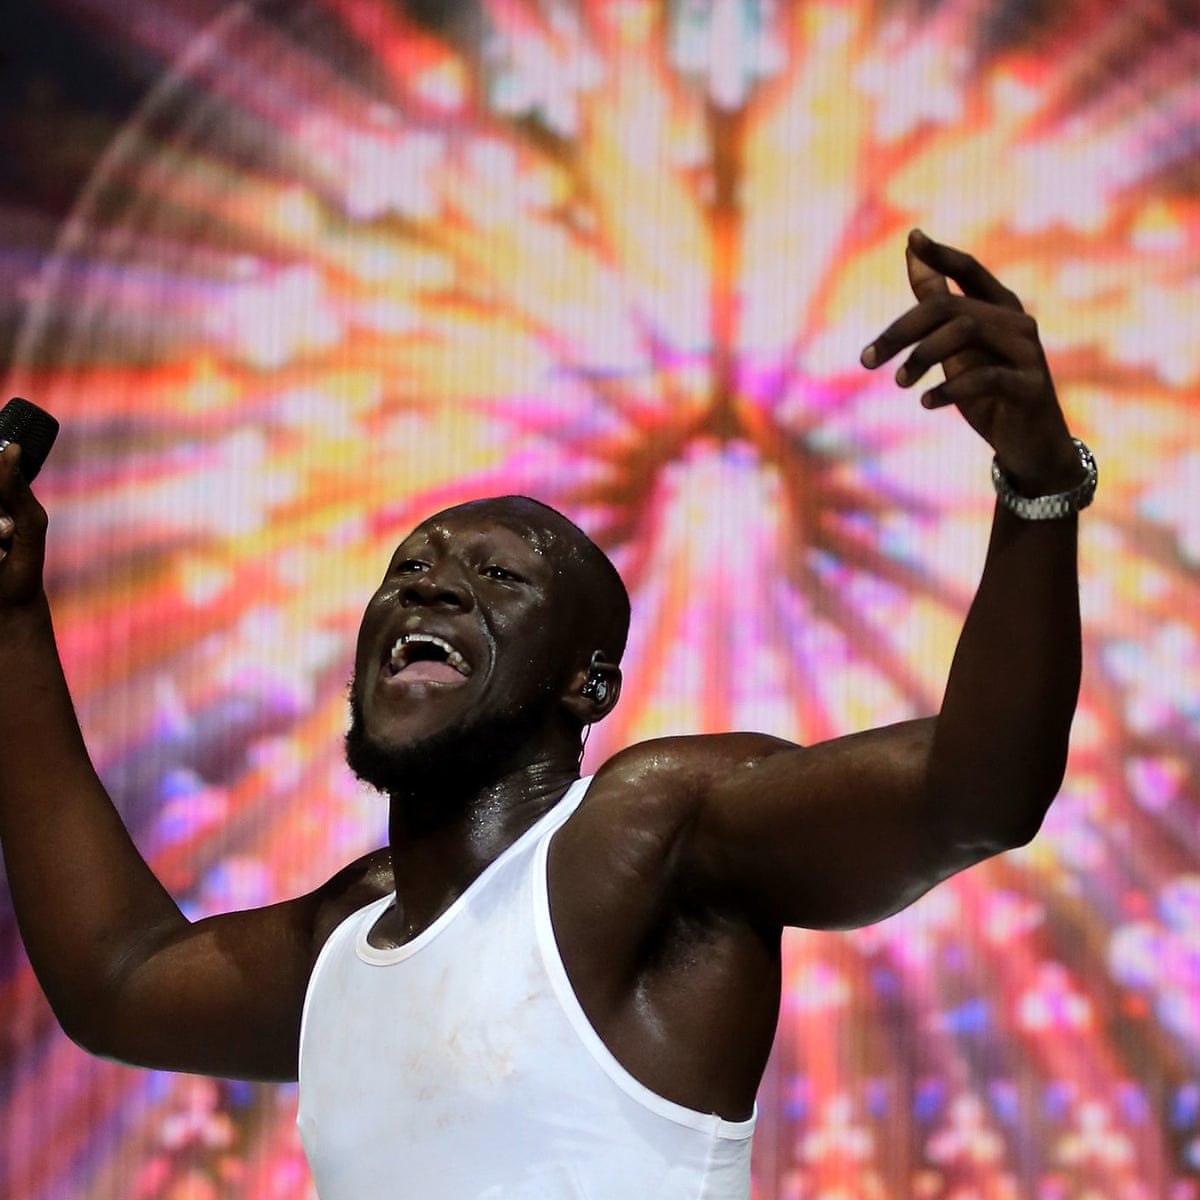 Stormzy S New Album Tops Charts Hours After Release Music The Guardian